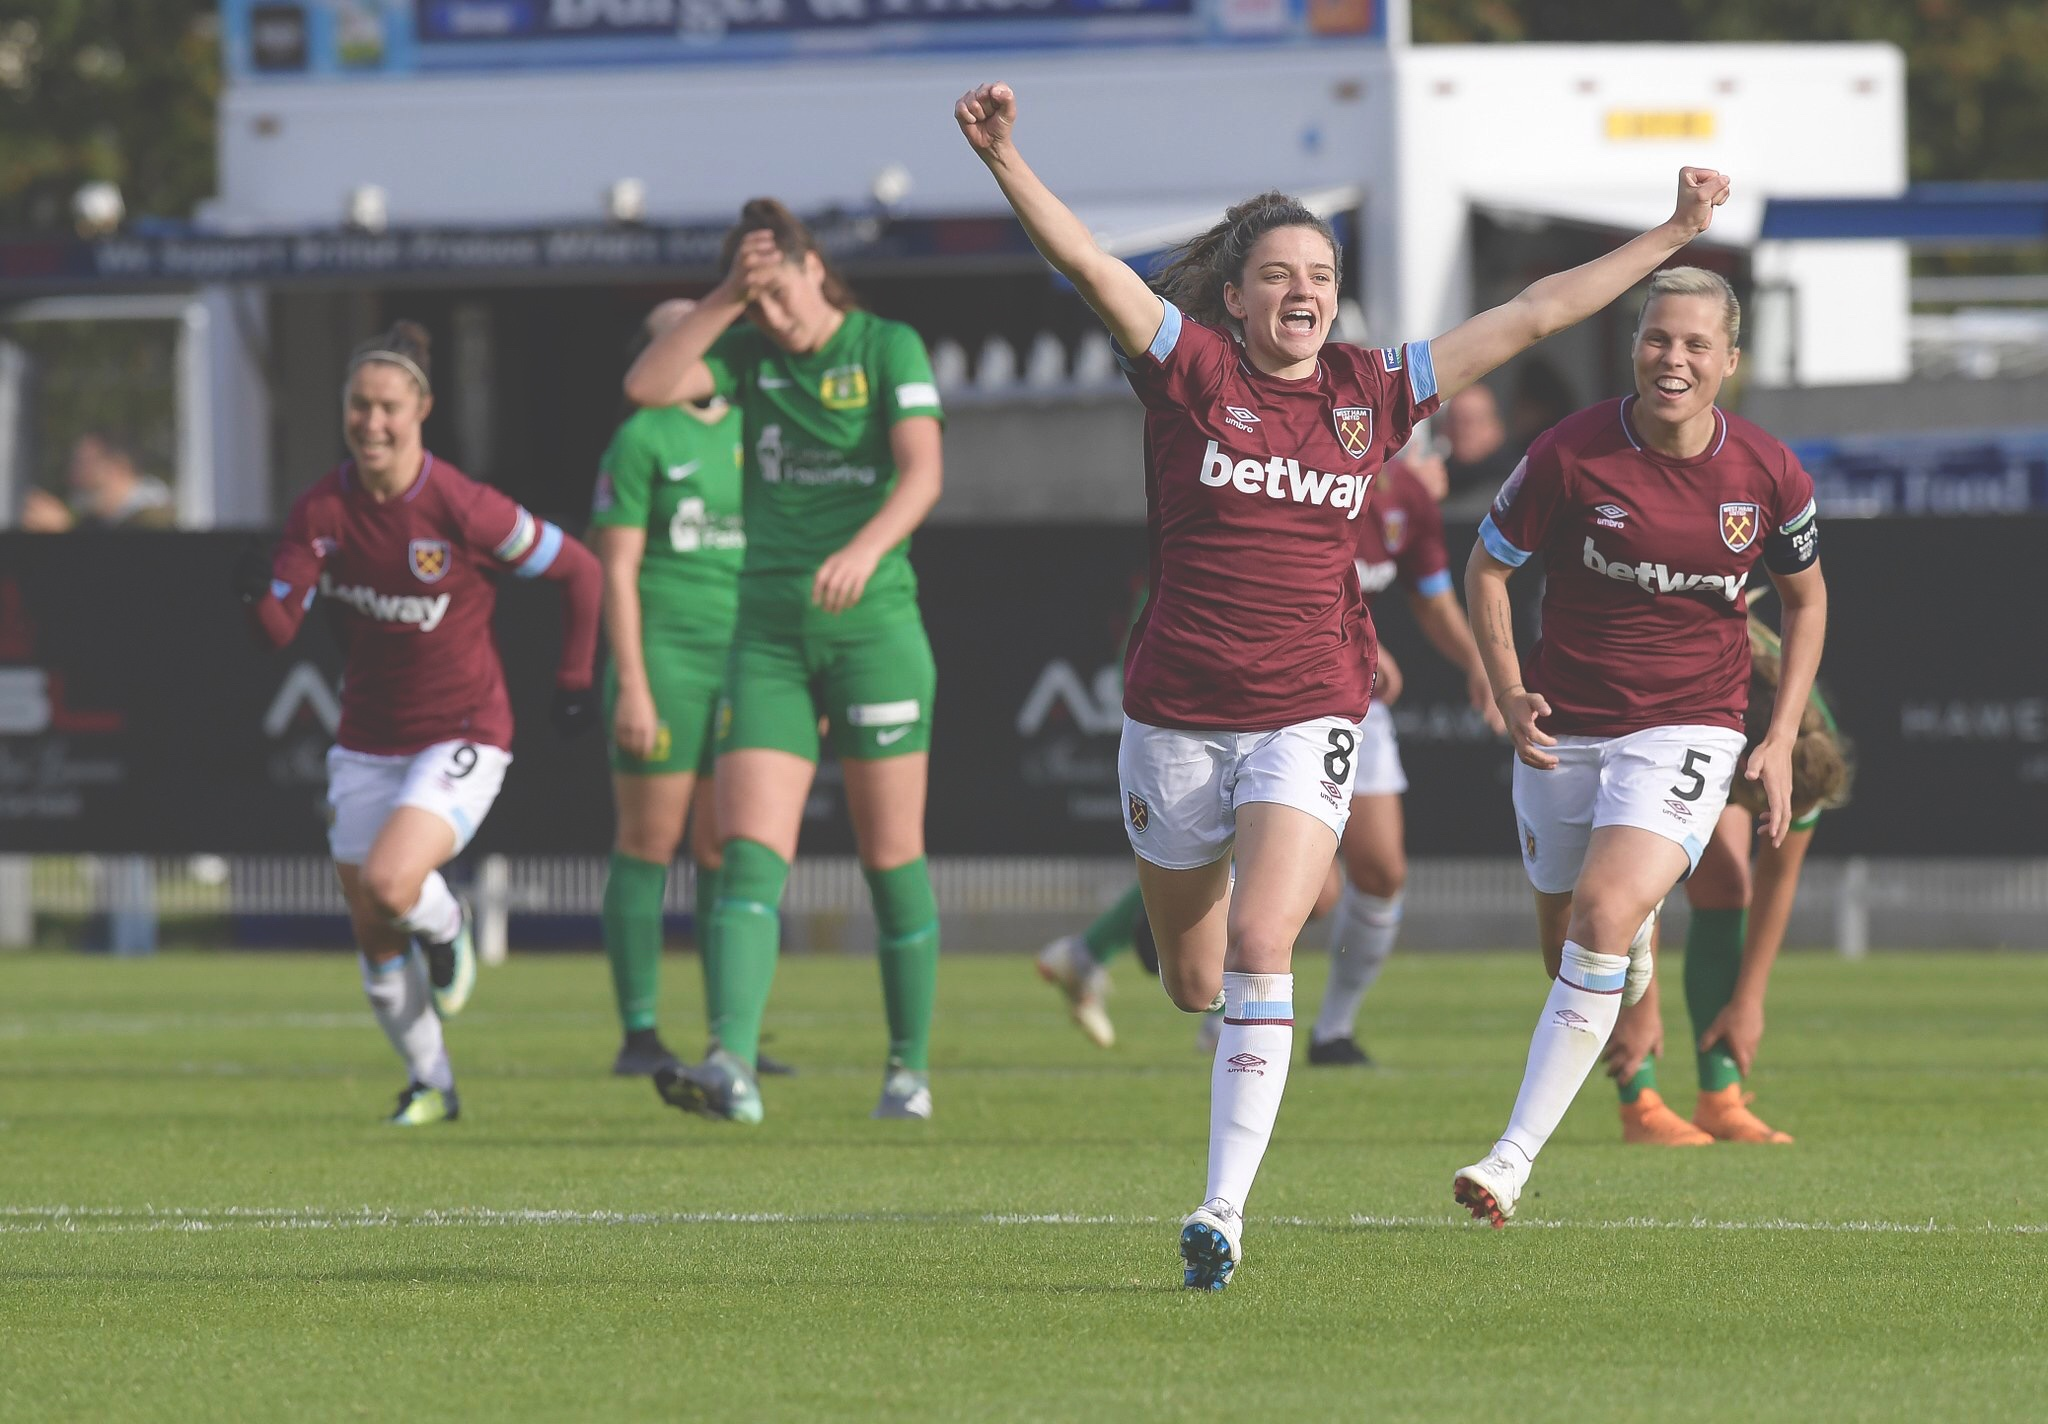 Great finish from Leanne Kiernan to give us the lead against Yeovil Ladies FC